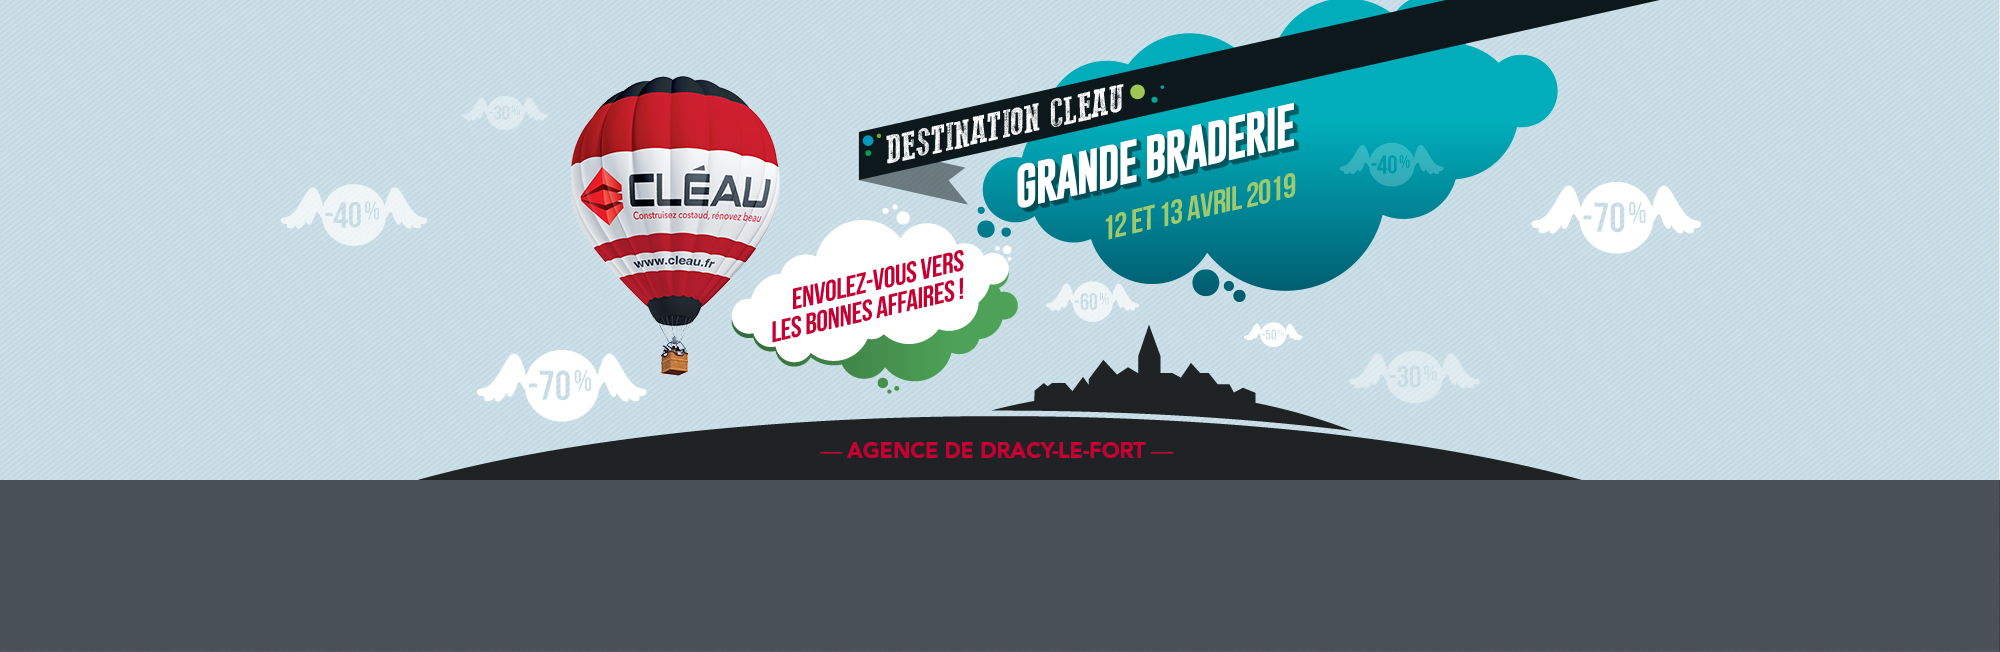 CLEAU-braderie-avril-2019-slide